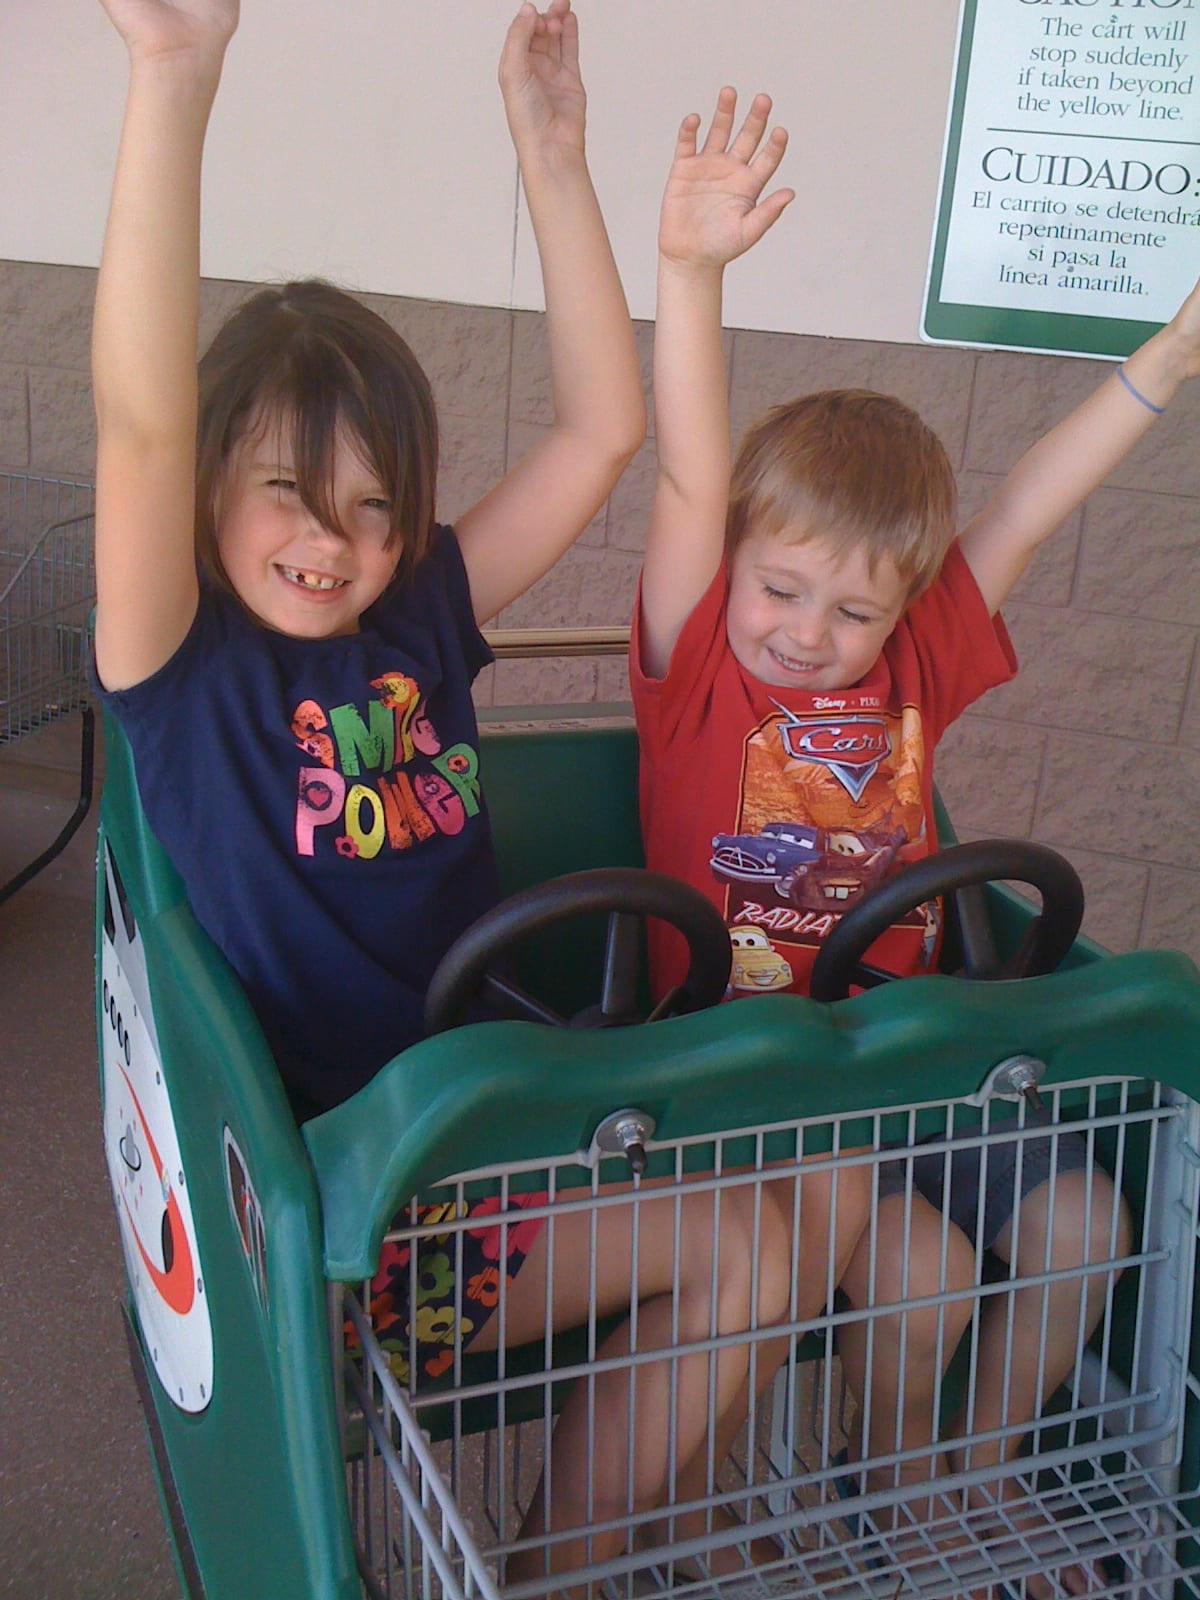 Kids in Publix shopping cart